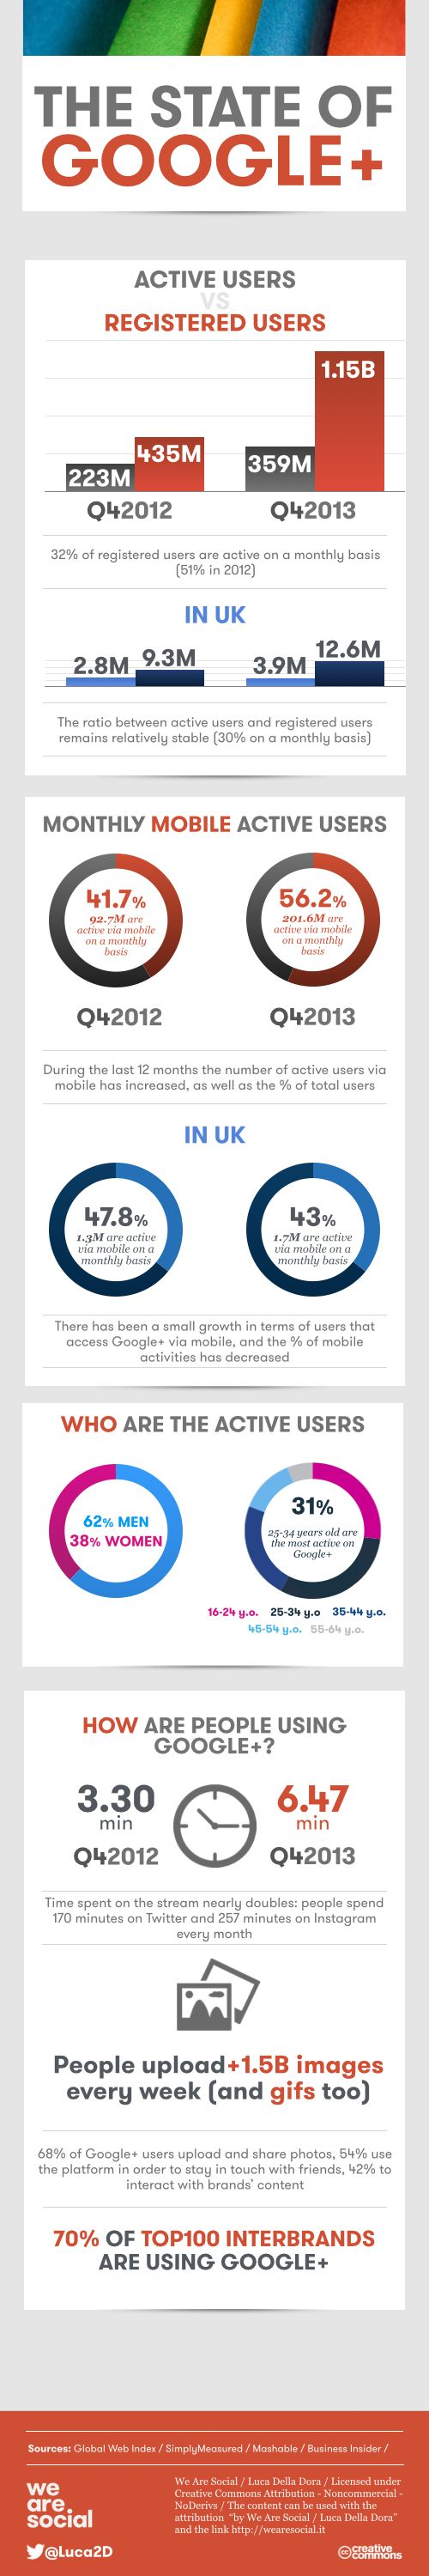 Two new infographics with the latest Global, US & UK Google+ user Statistics. Plus tips on how to increase engagement levels on Google+!